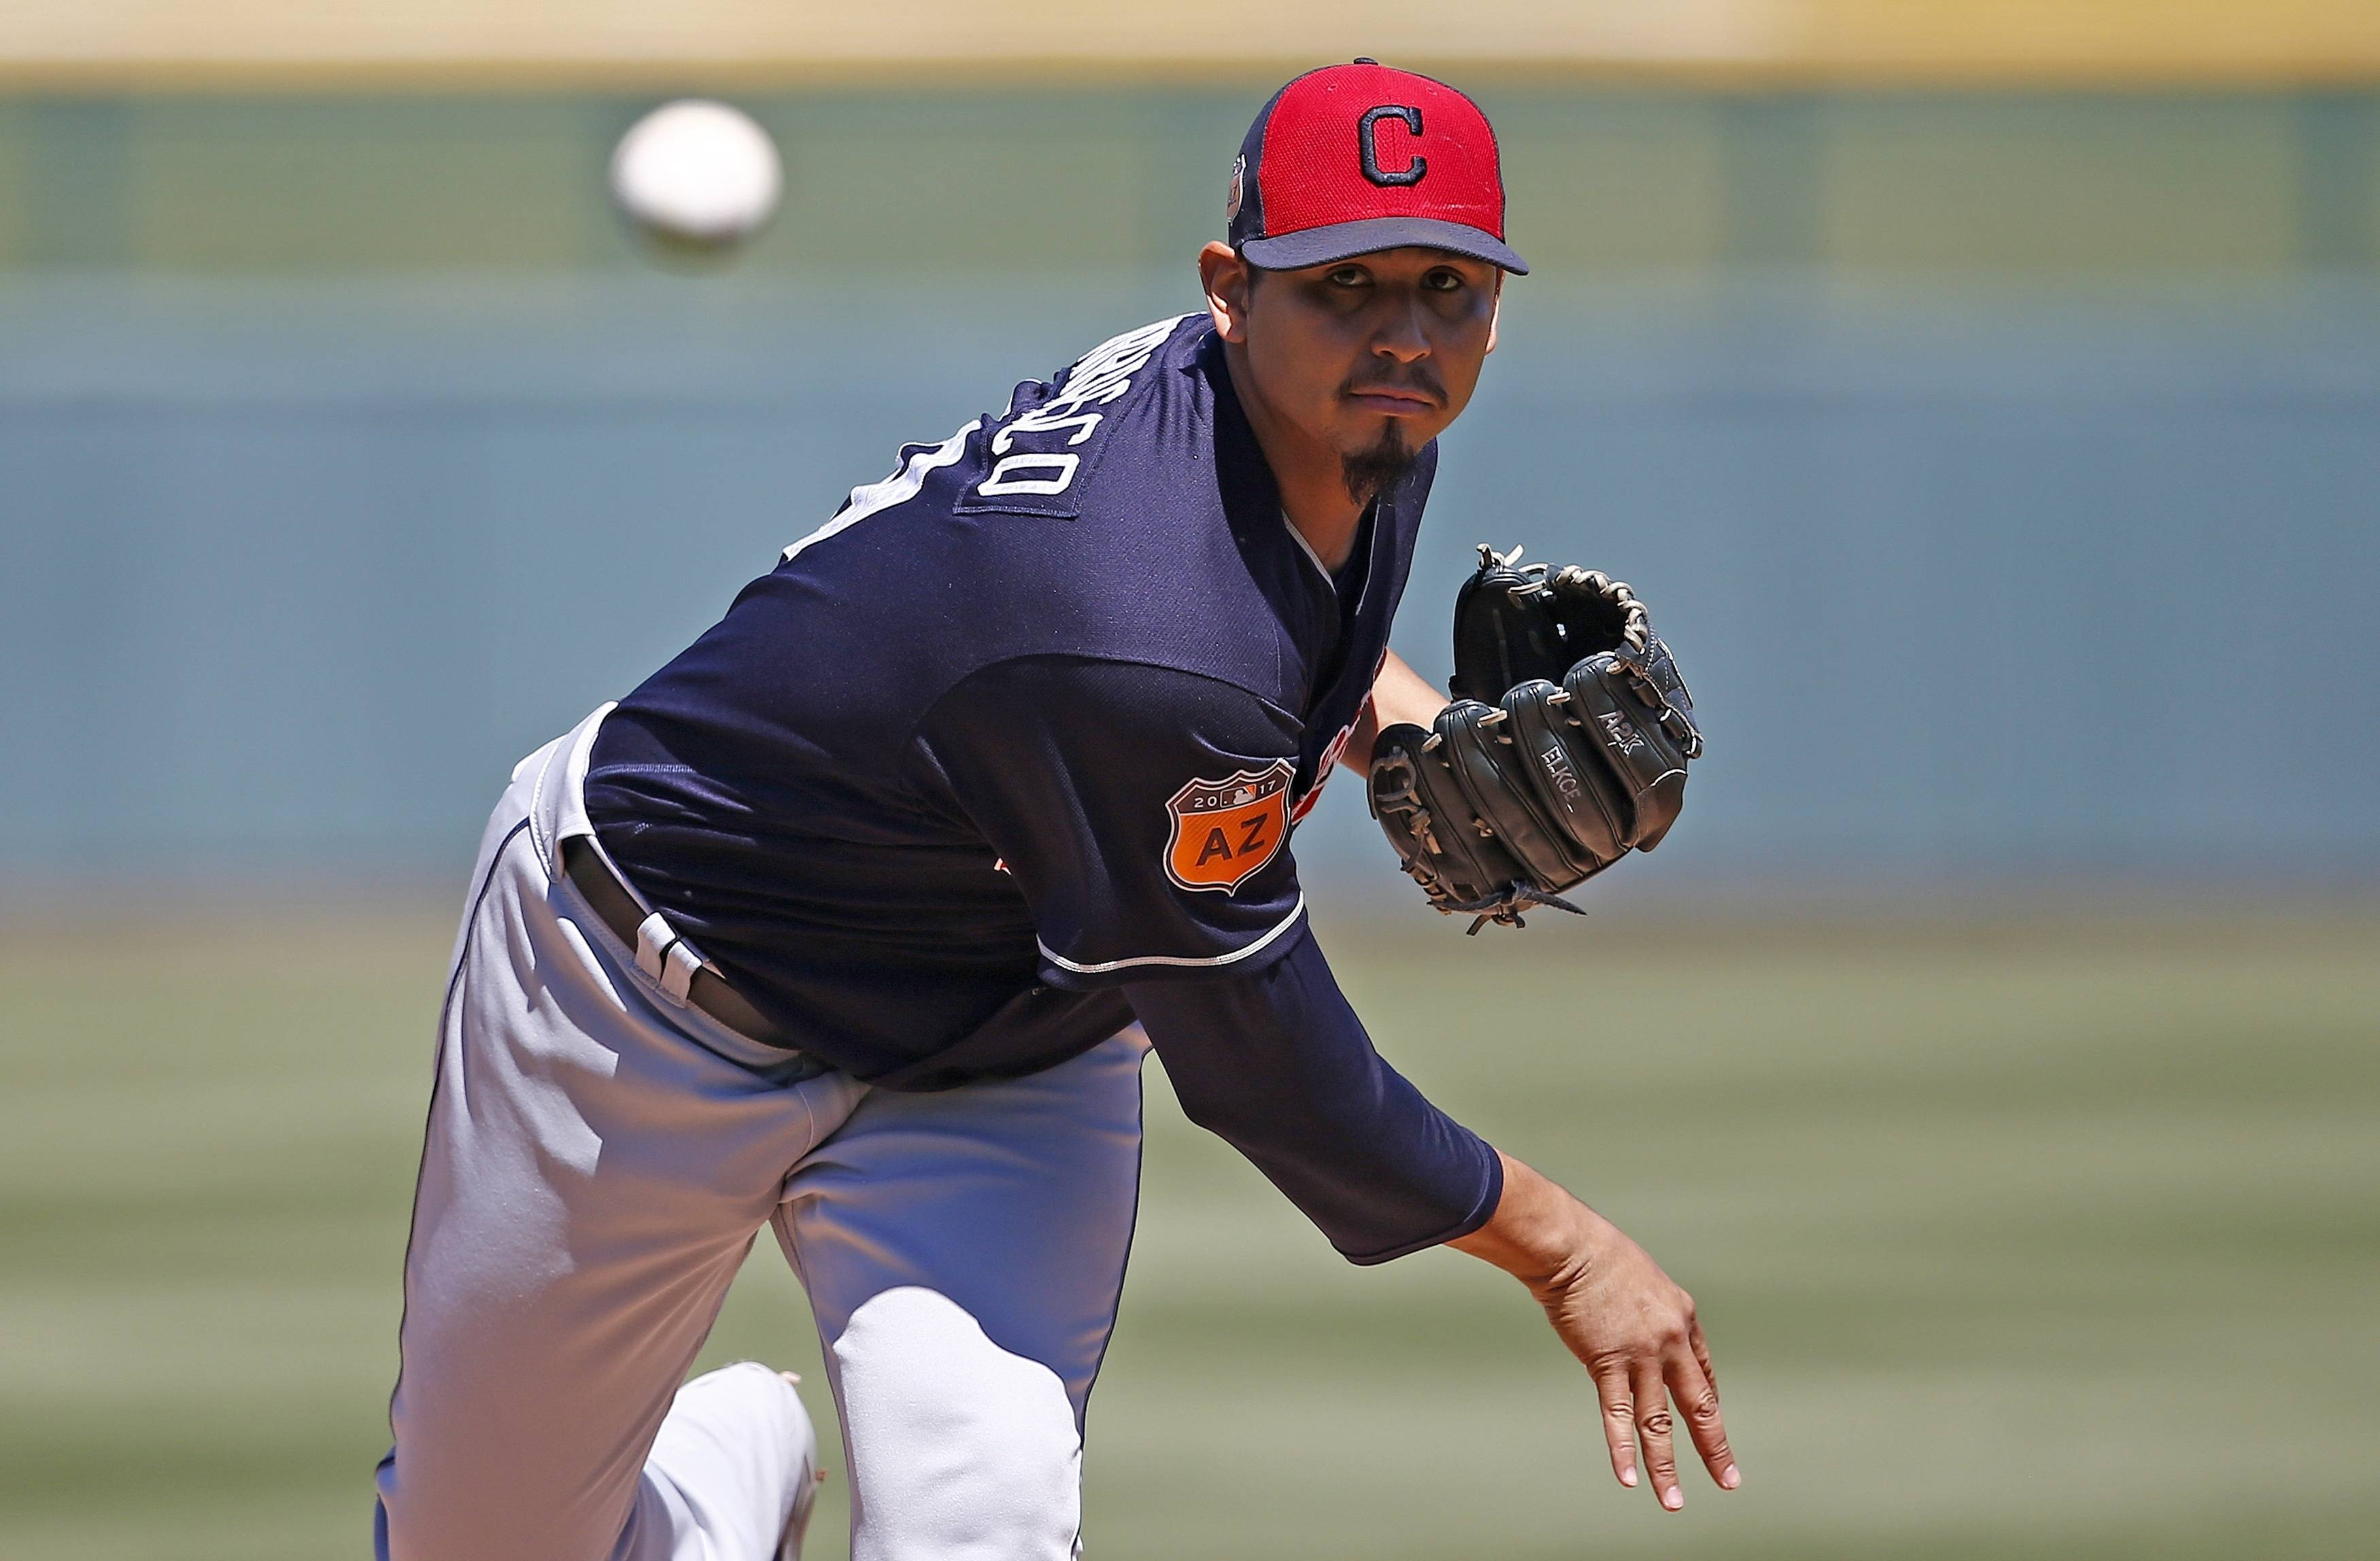 Cleveland Indians' Carlos Carrasco warms up during the first inning of a spring training baseball game against the Chicago Cubs on Friday, March 24, 2017, in Mesa, Ariz. (AP Photo/Ross D. Franklin)